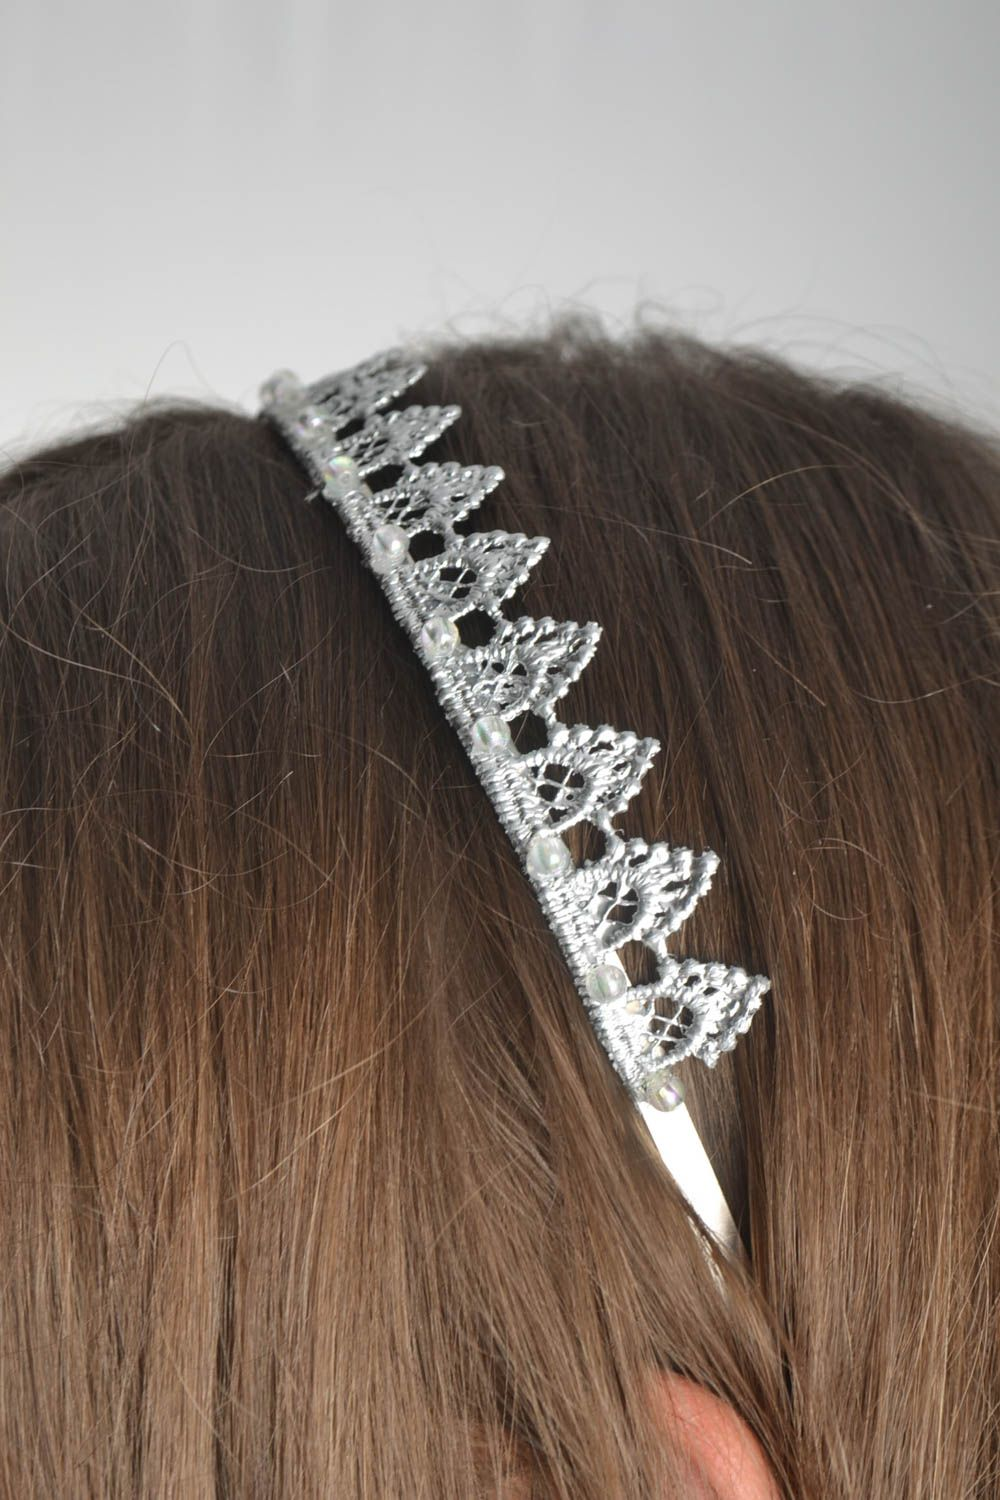 Beautiful handmade diadem hair band designer hair accessories gifts for her photo 1